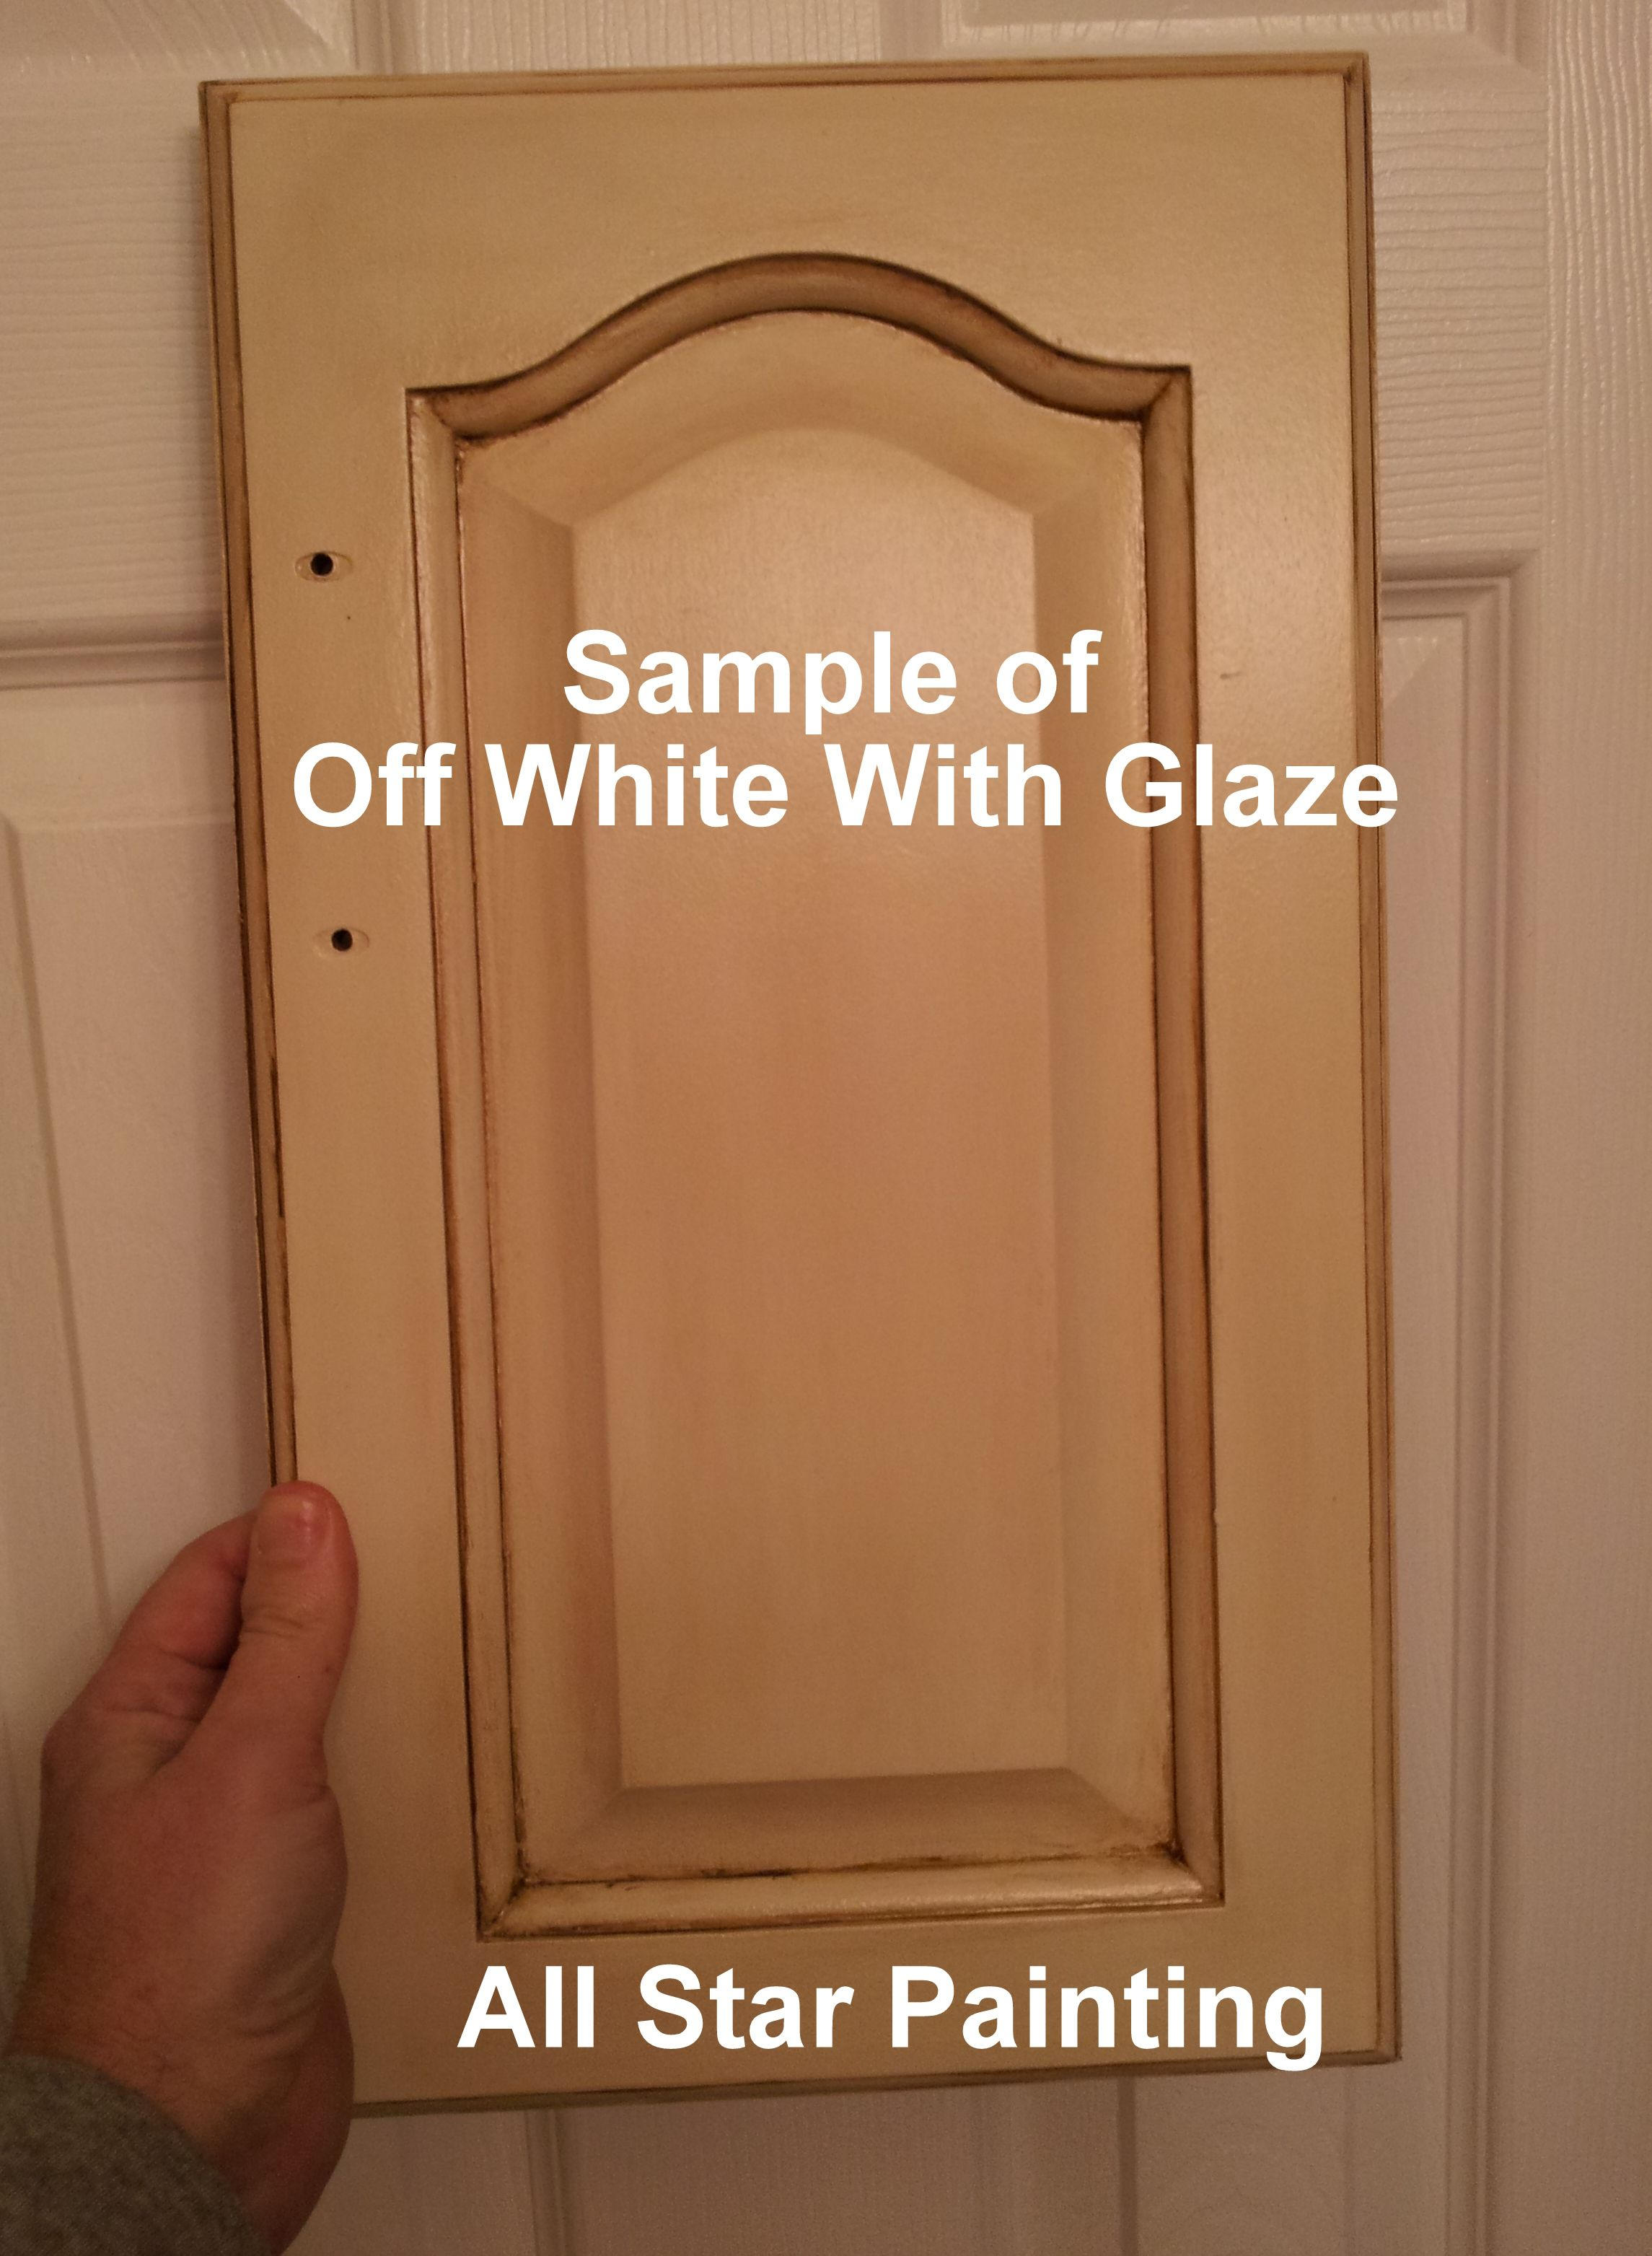 Spray paint for kitchen cupboards  a sample of how an old cabinet door can look with some offwhite